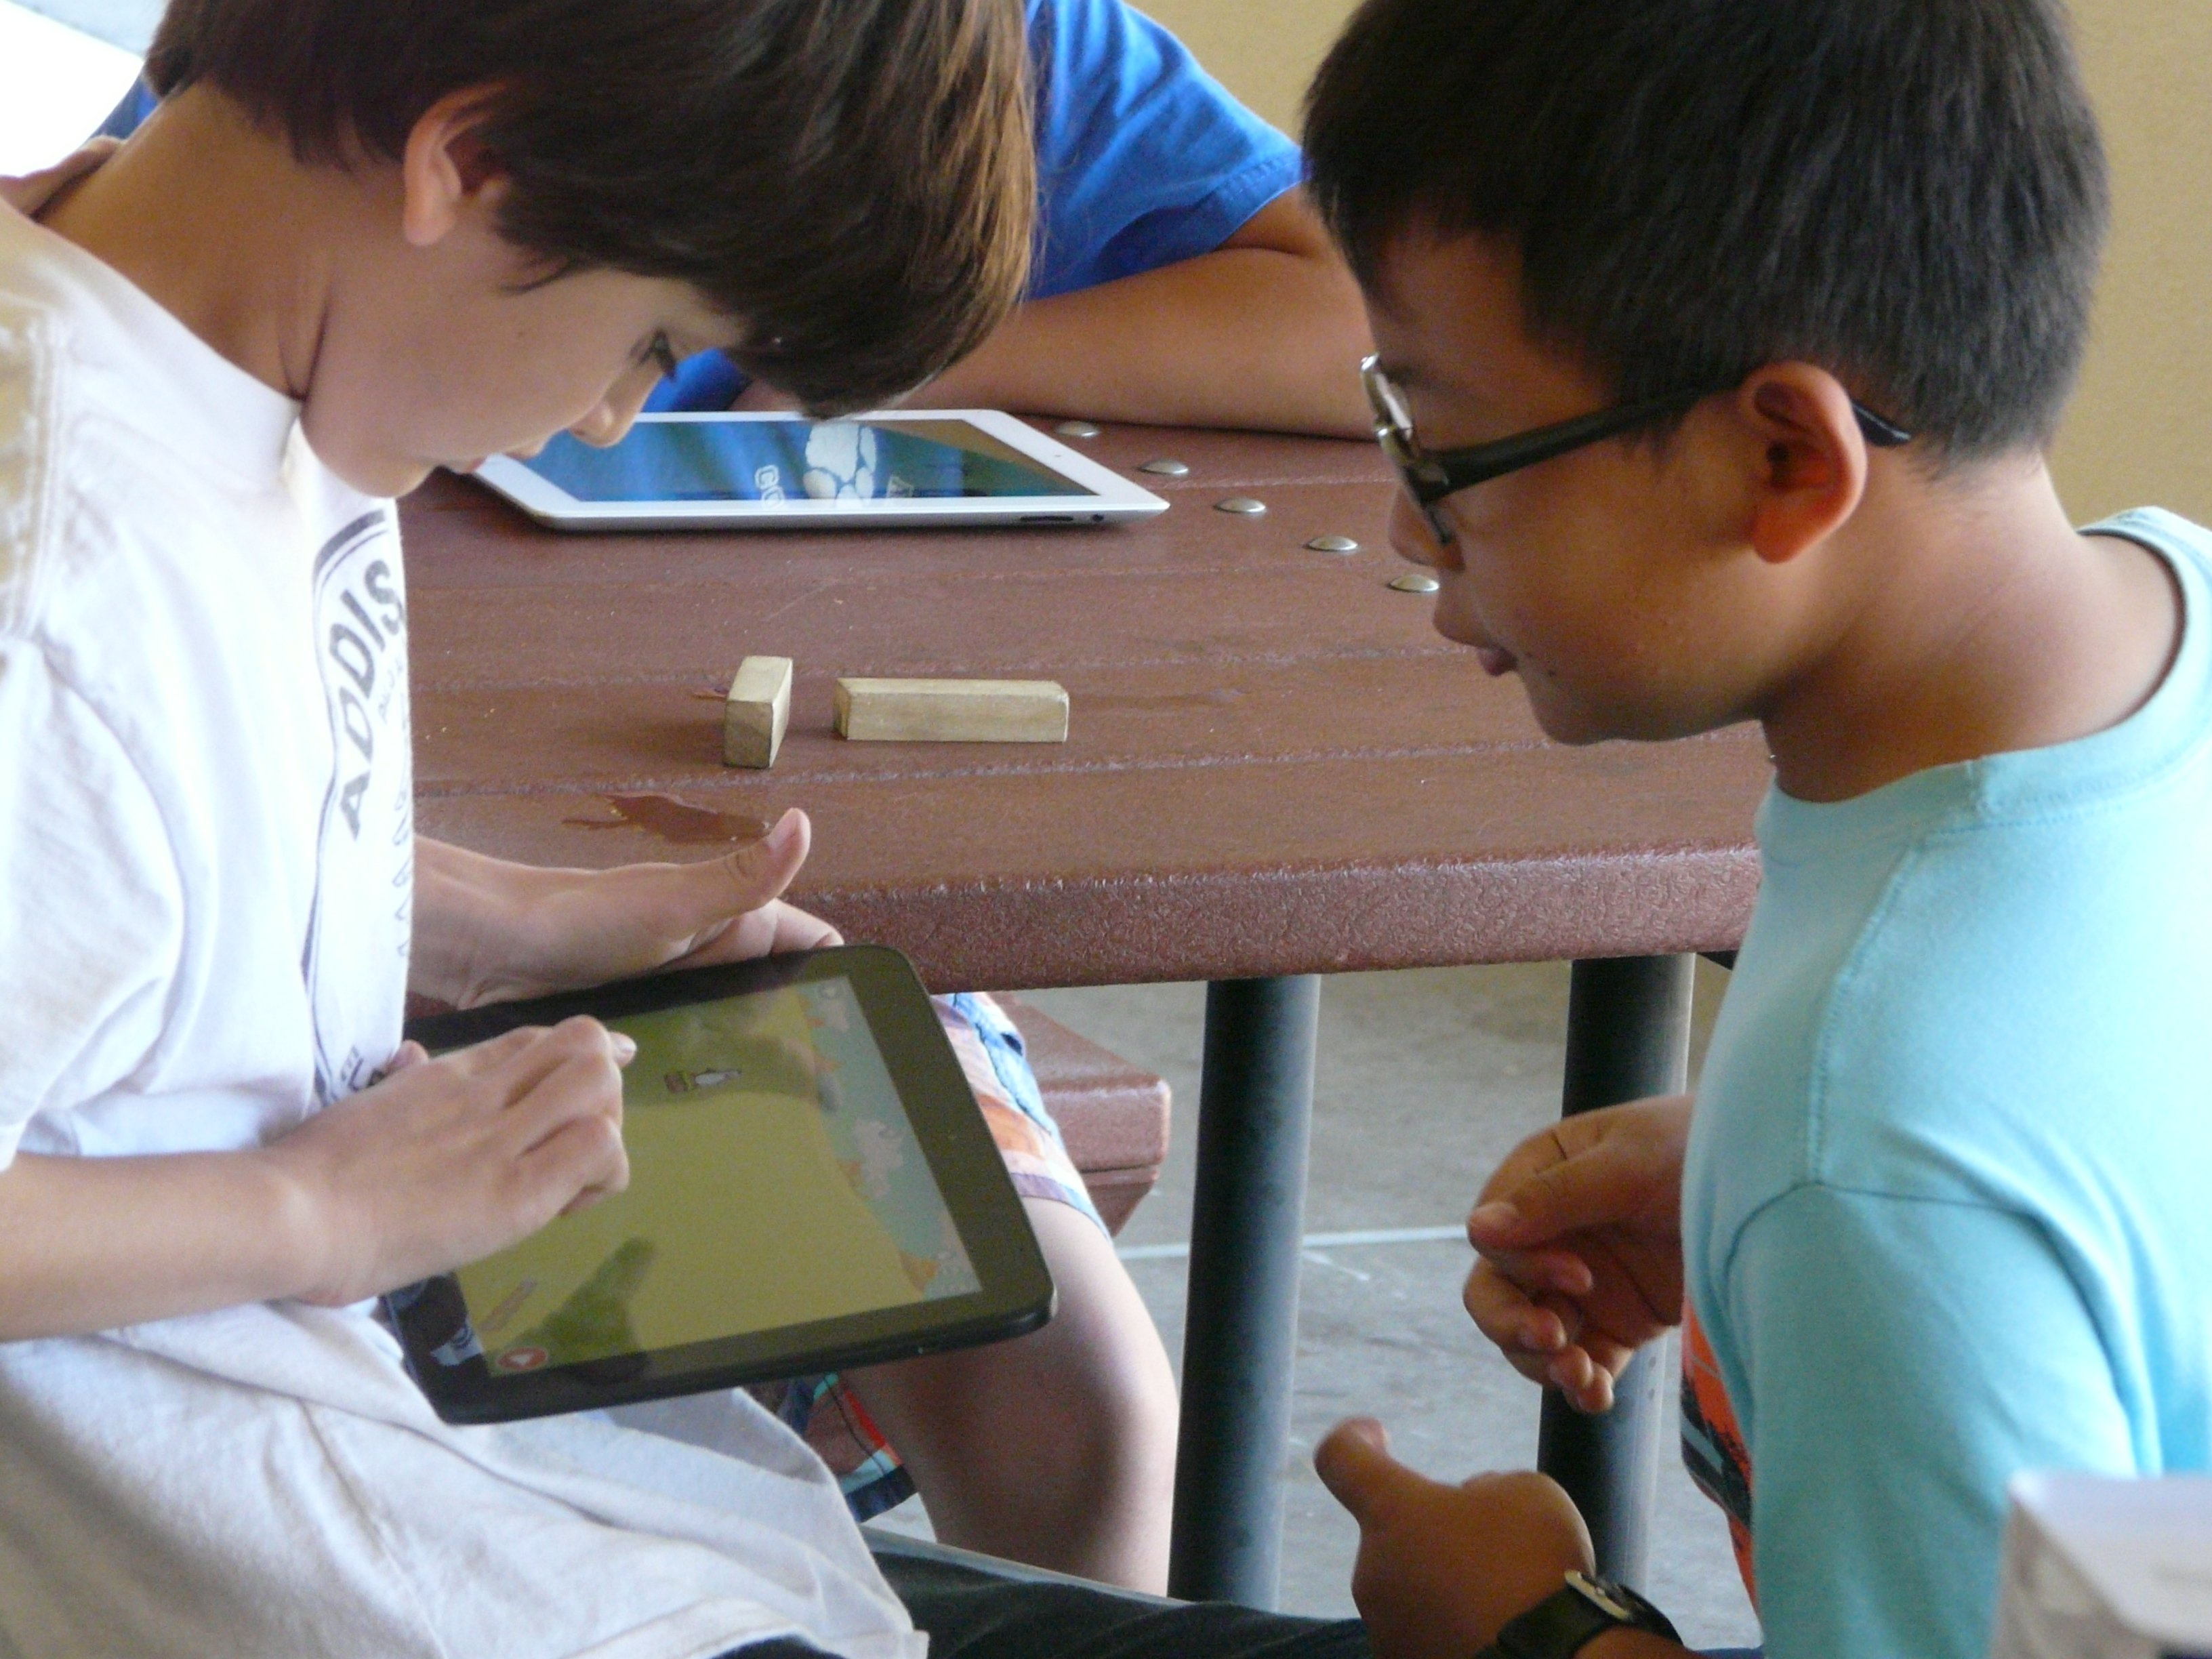 Boys Coding with Tynker on iPad